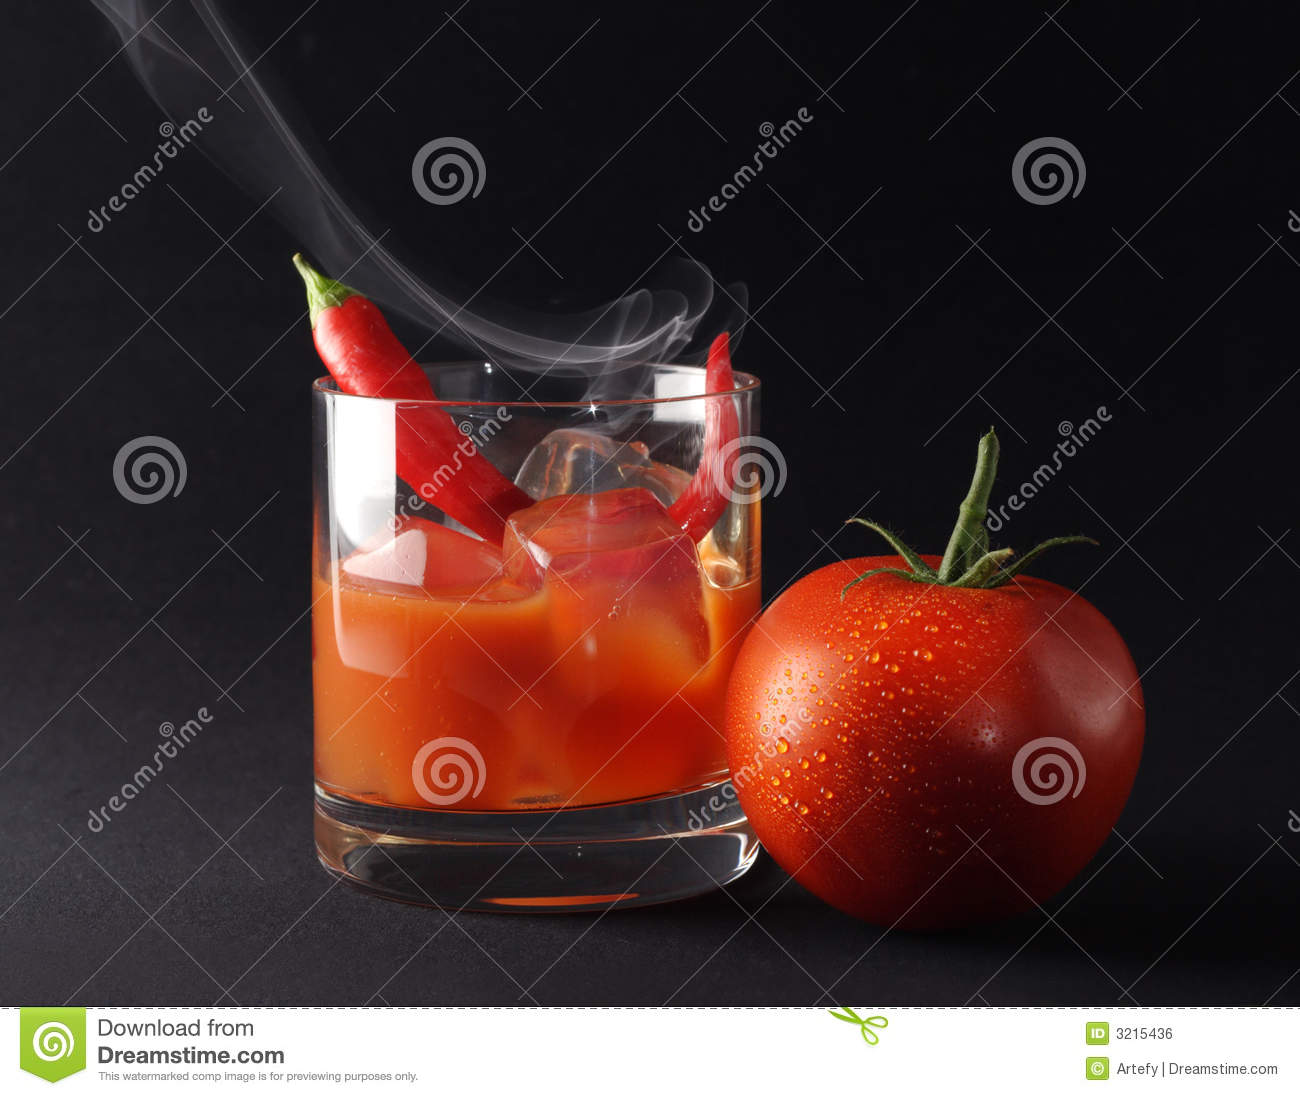 Icy Hot Tomato Drink Royalty Free Stock Image - Image: 3215436